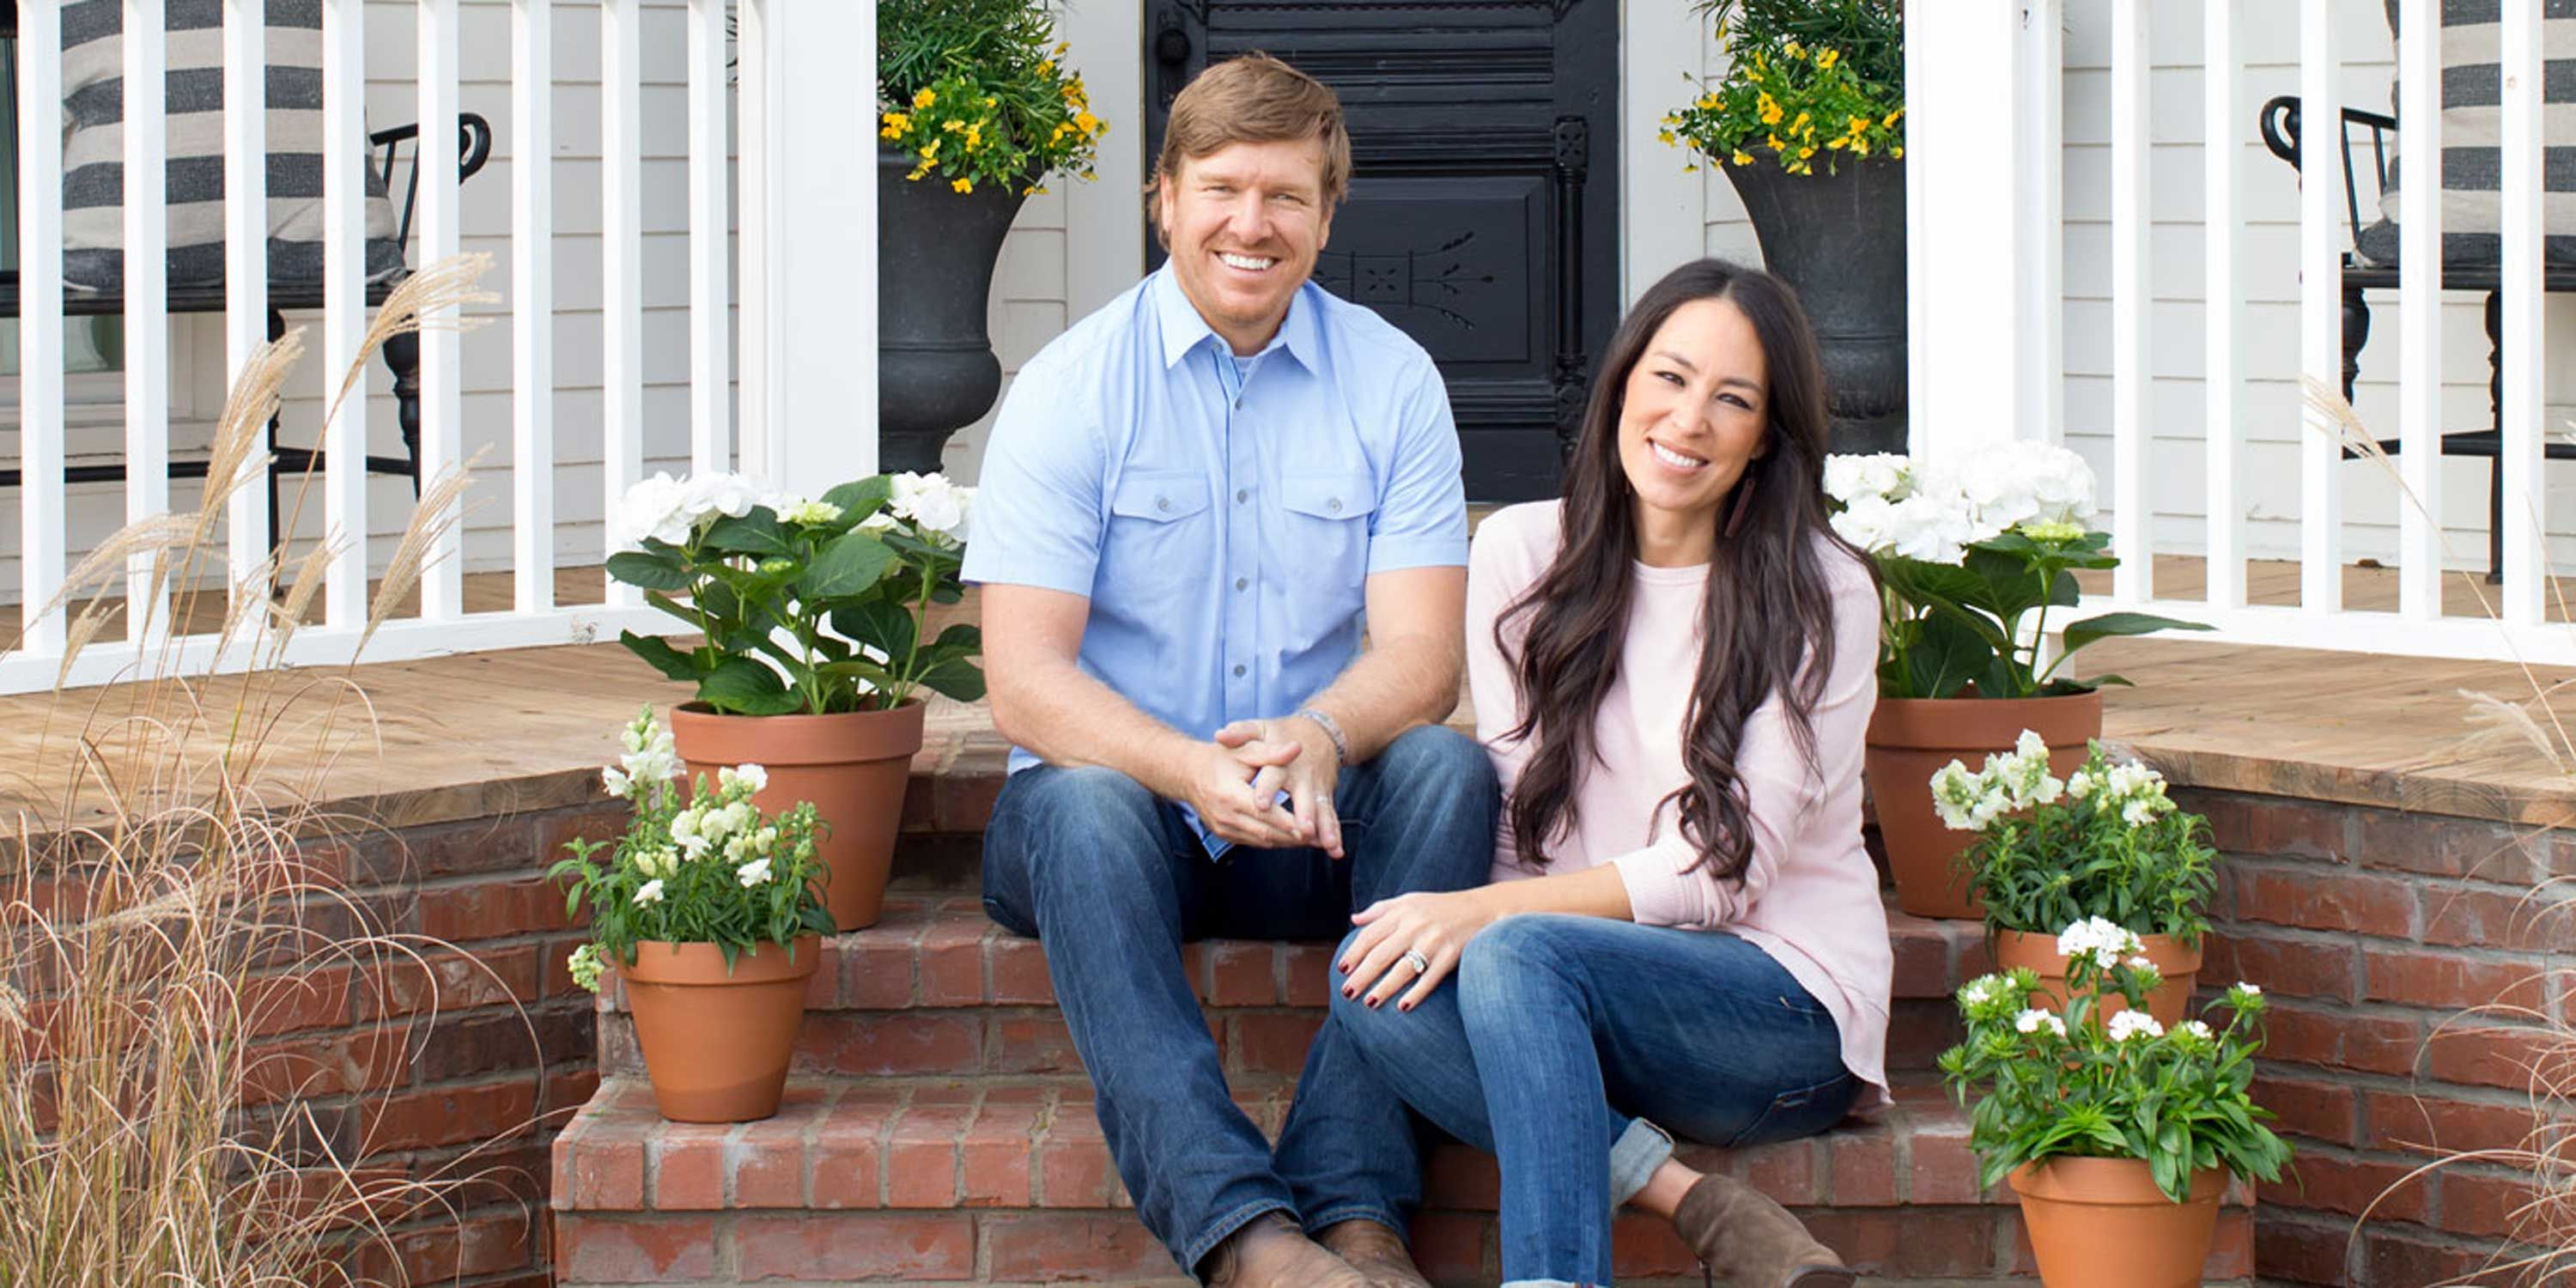 How To Get On Fixer Upper Casting For Hgtv S With Chip And Joanna Gaines